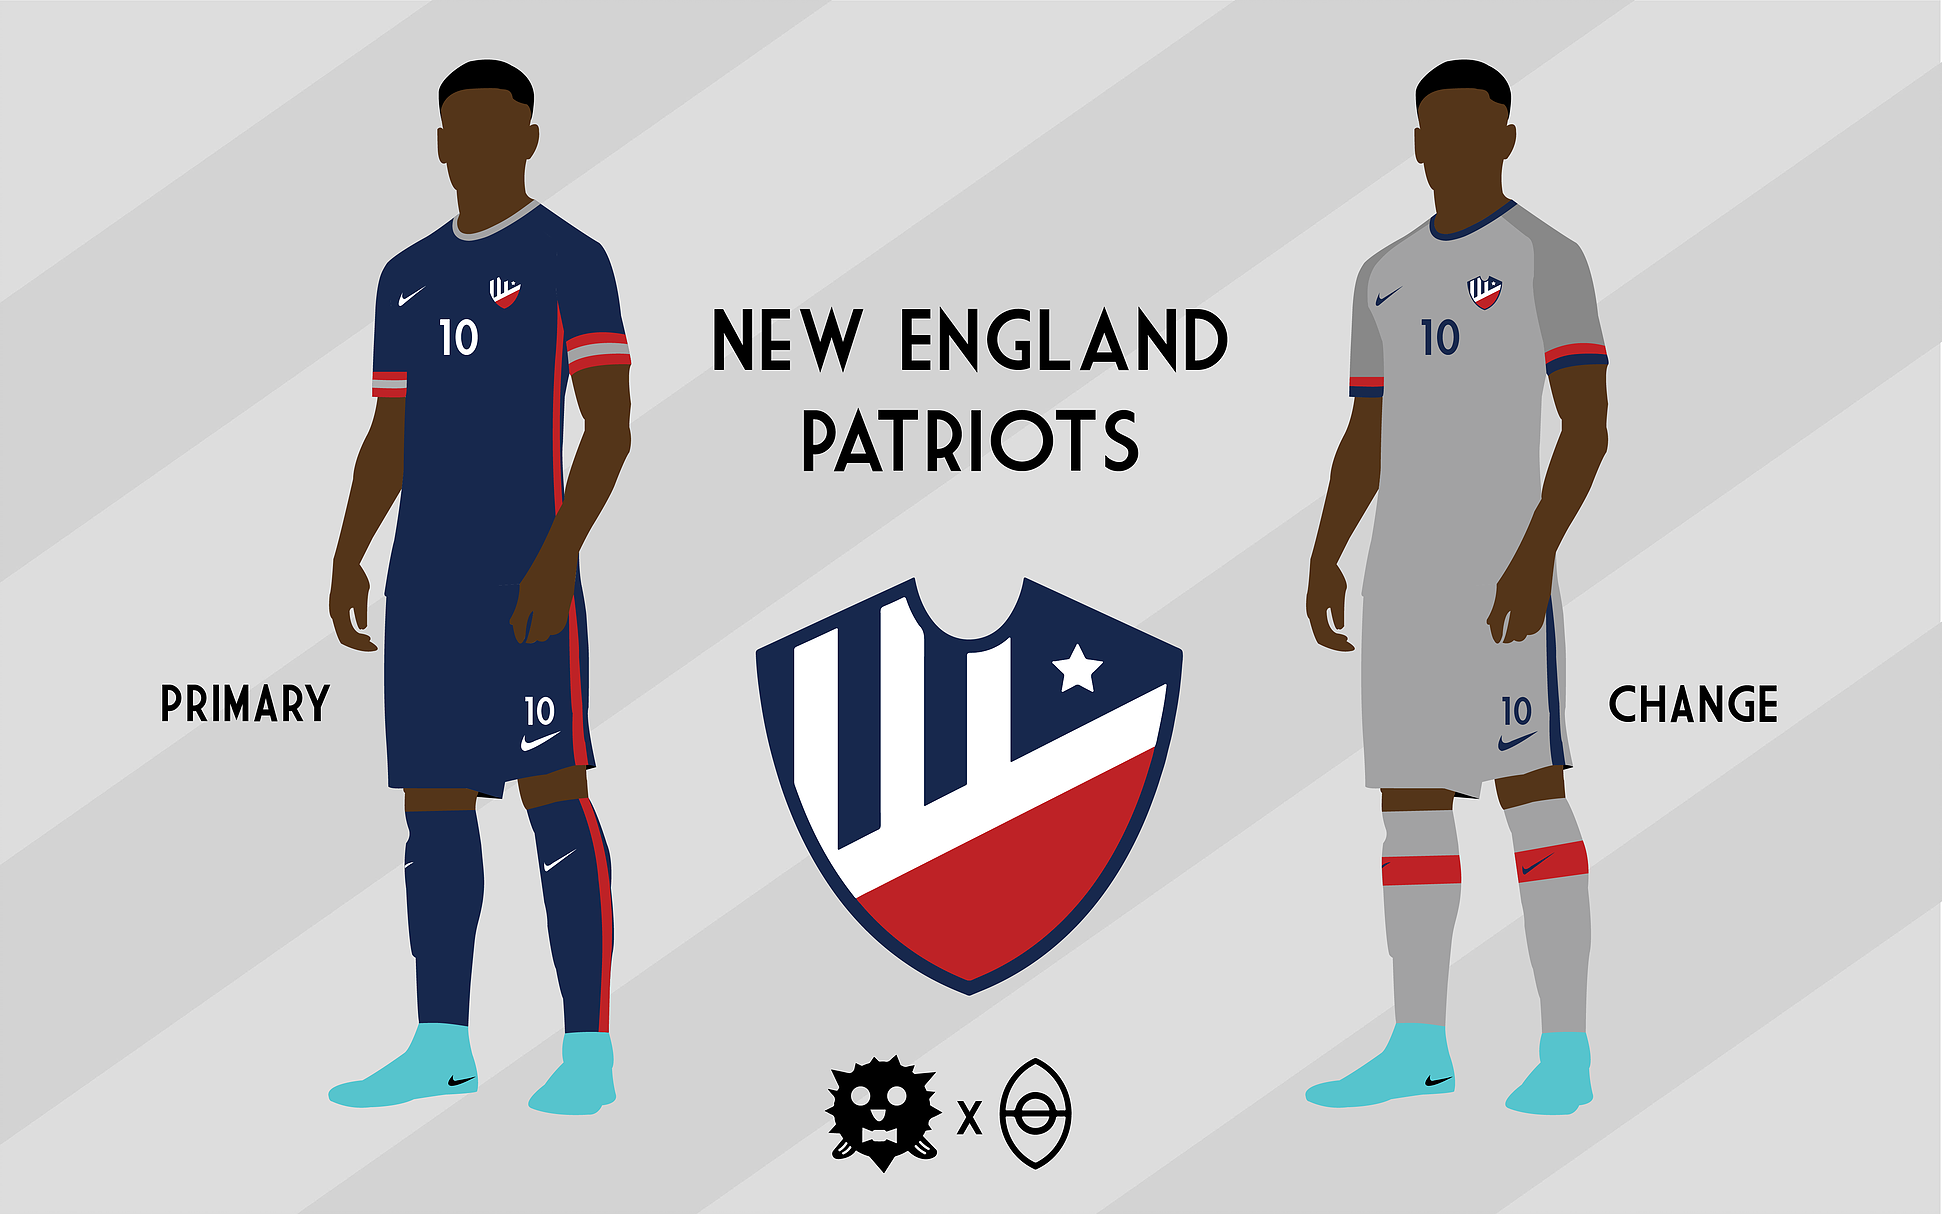 Every NFL team's jerseys reimagined as soccer kits